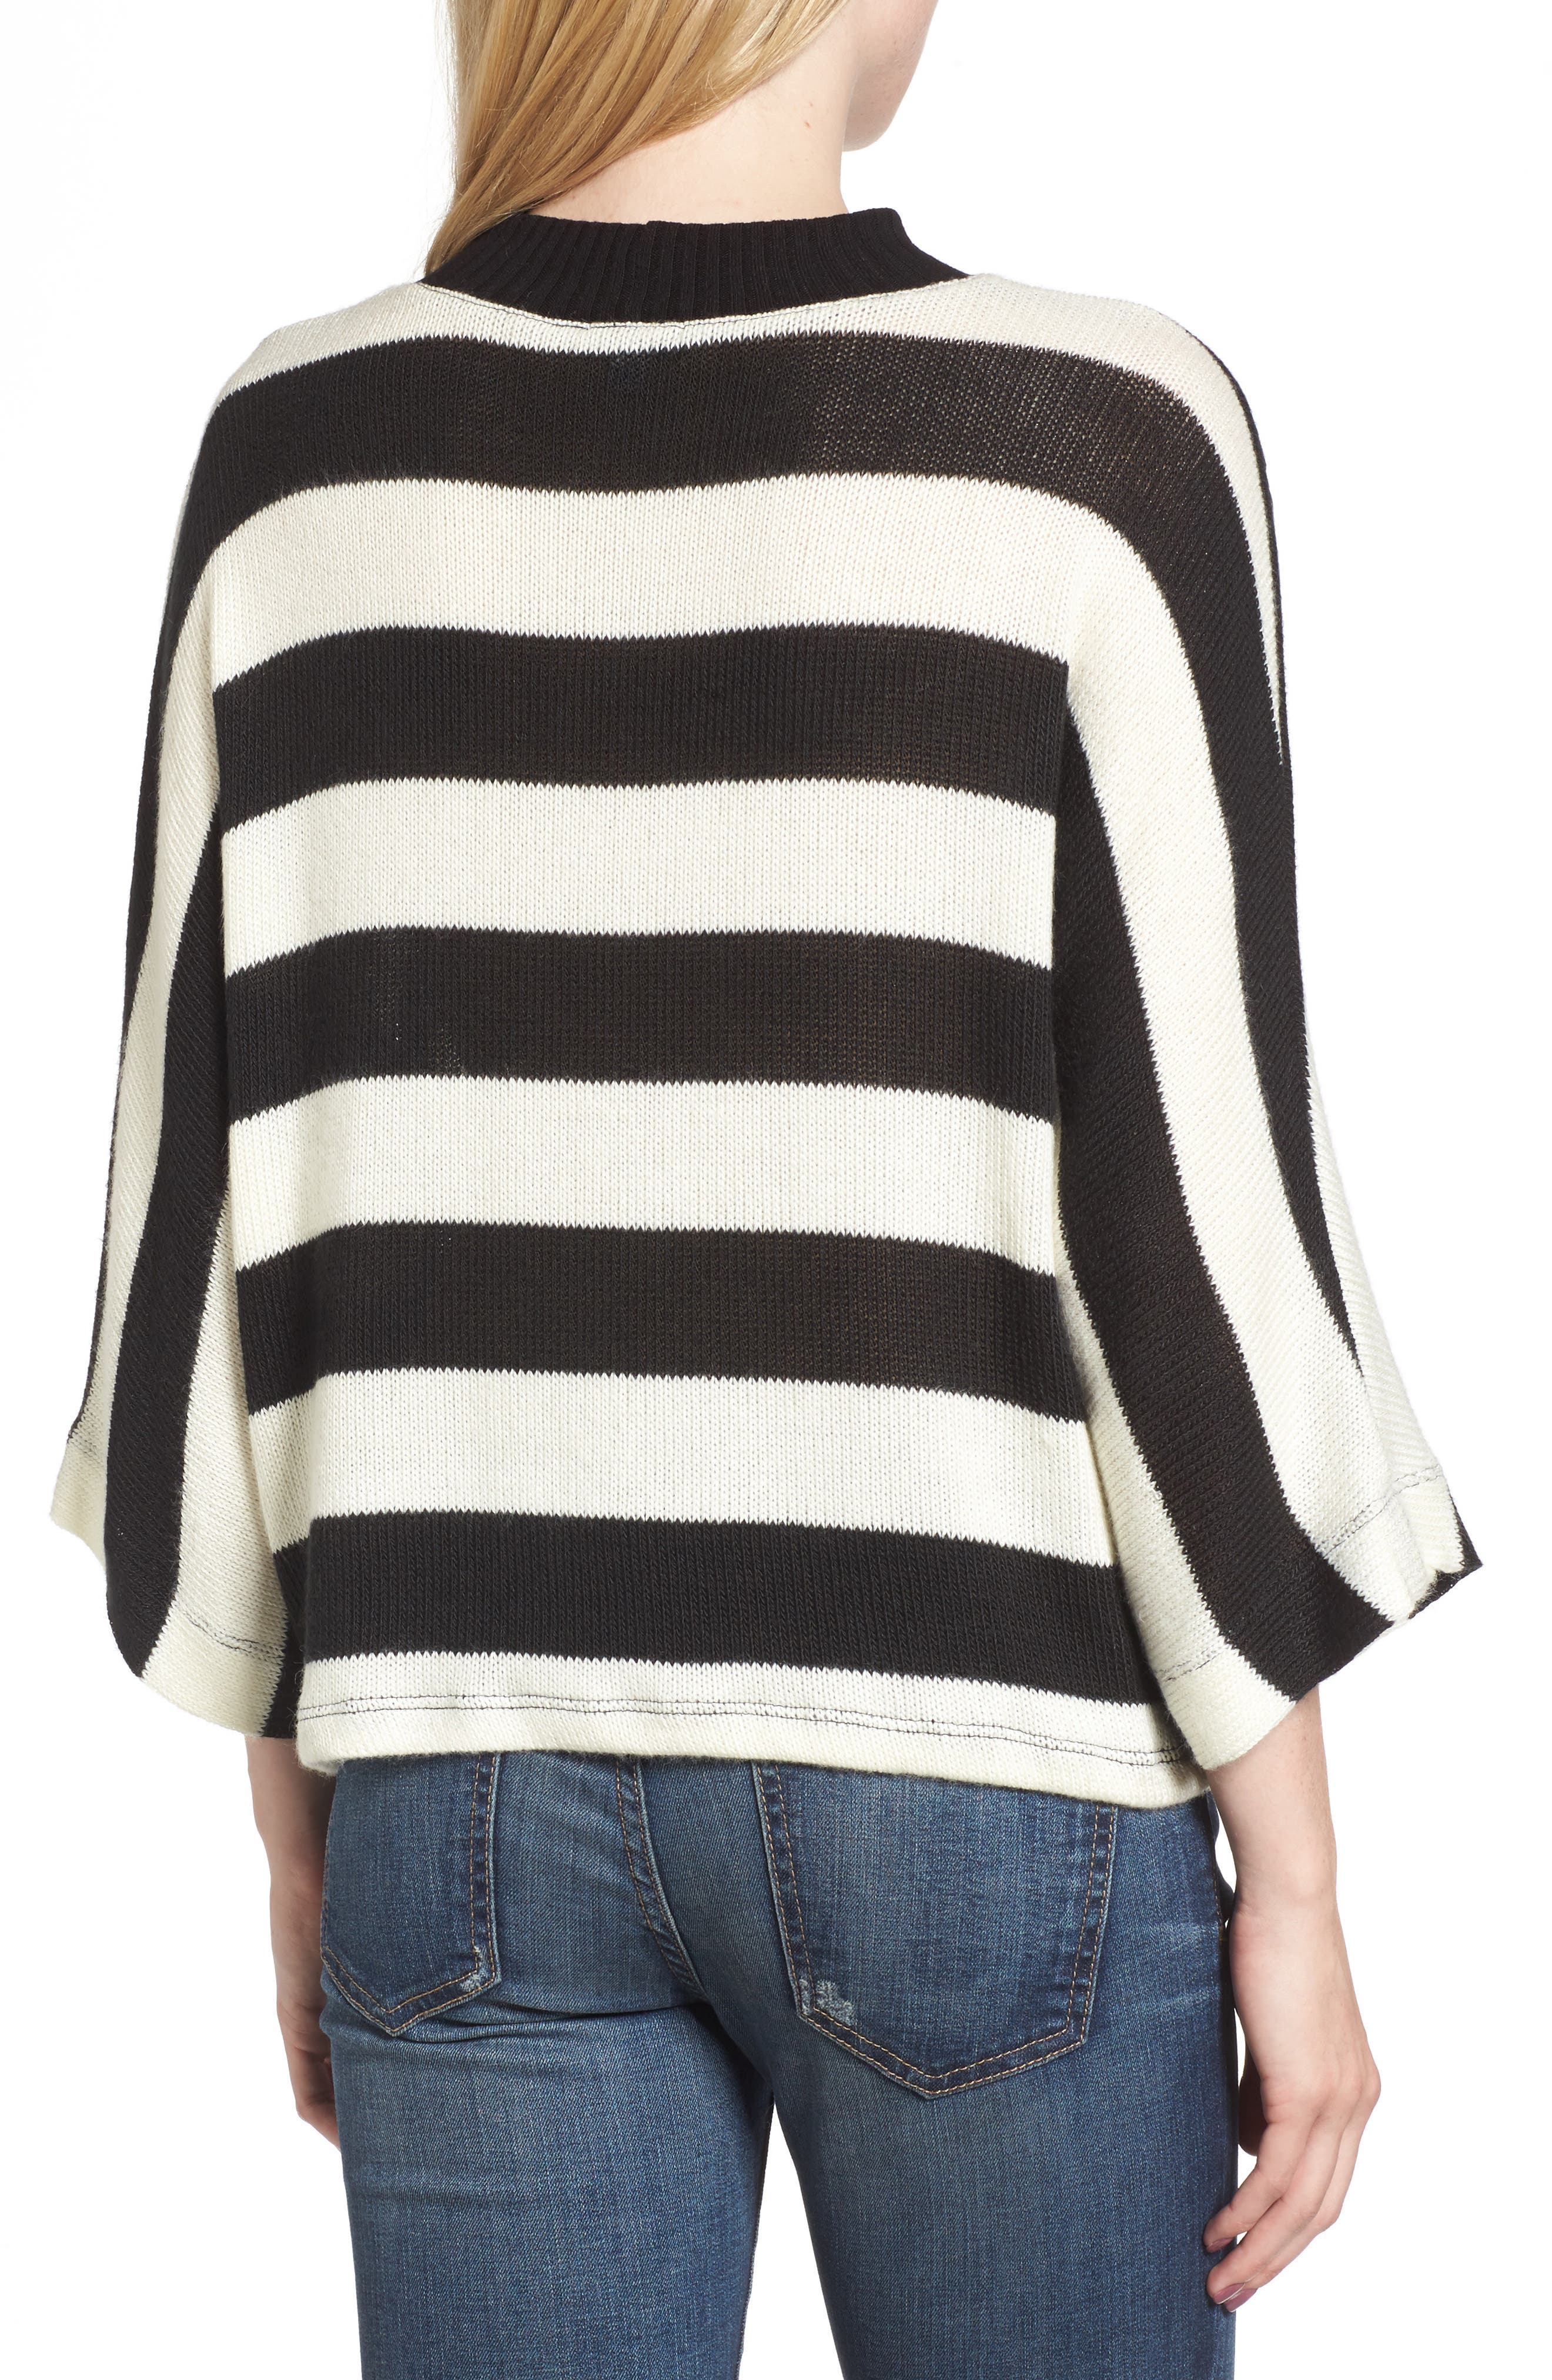 Kingston Stripe Sweater,                             Alternate thumbnail 2, color,                             001